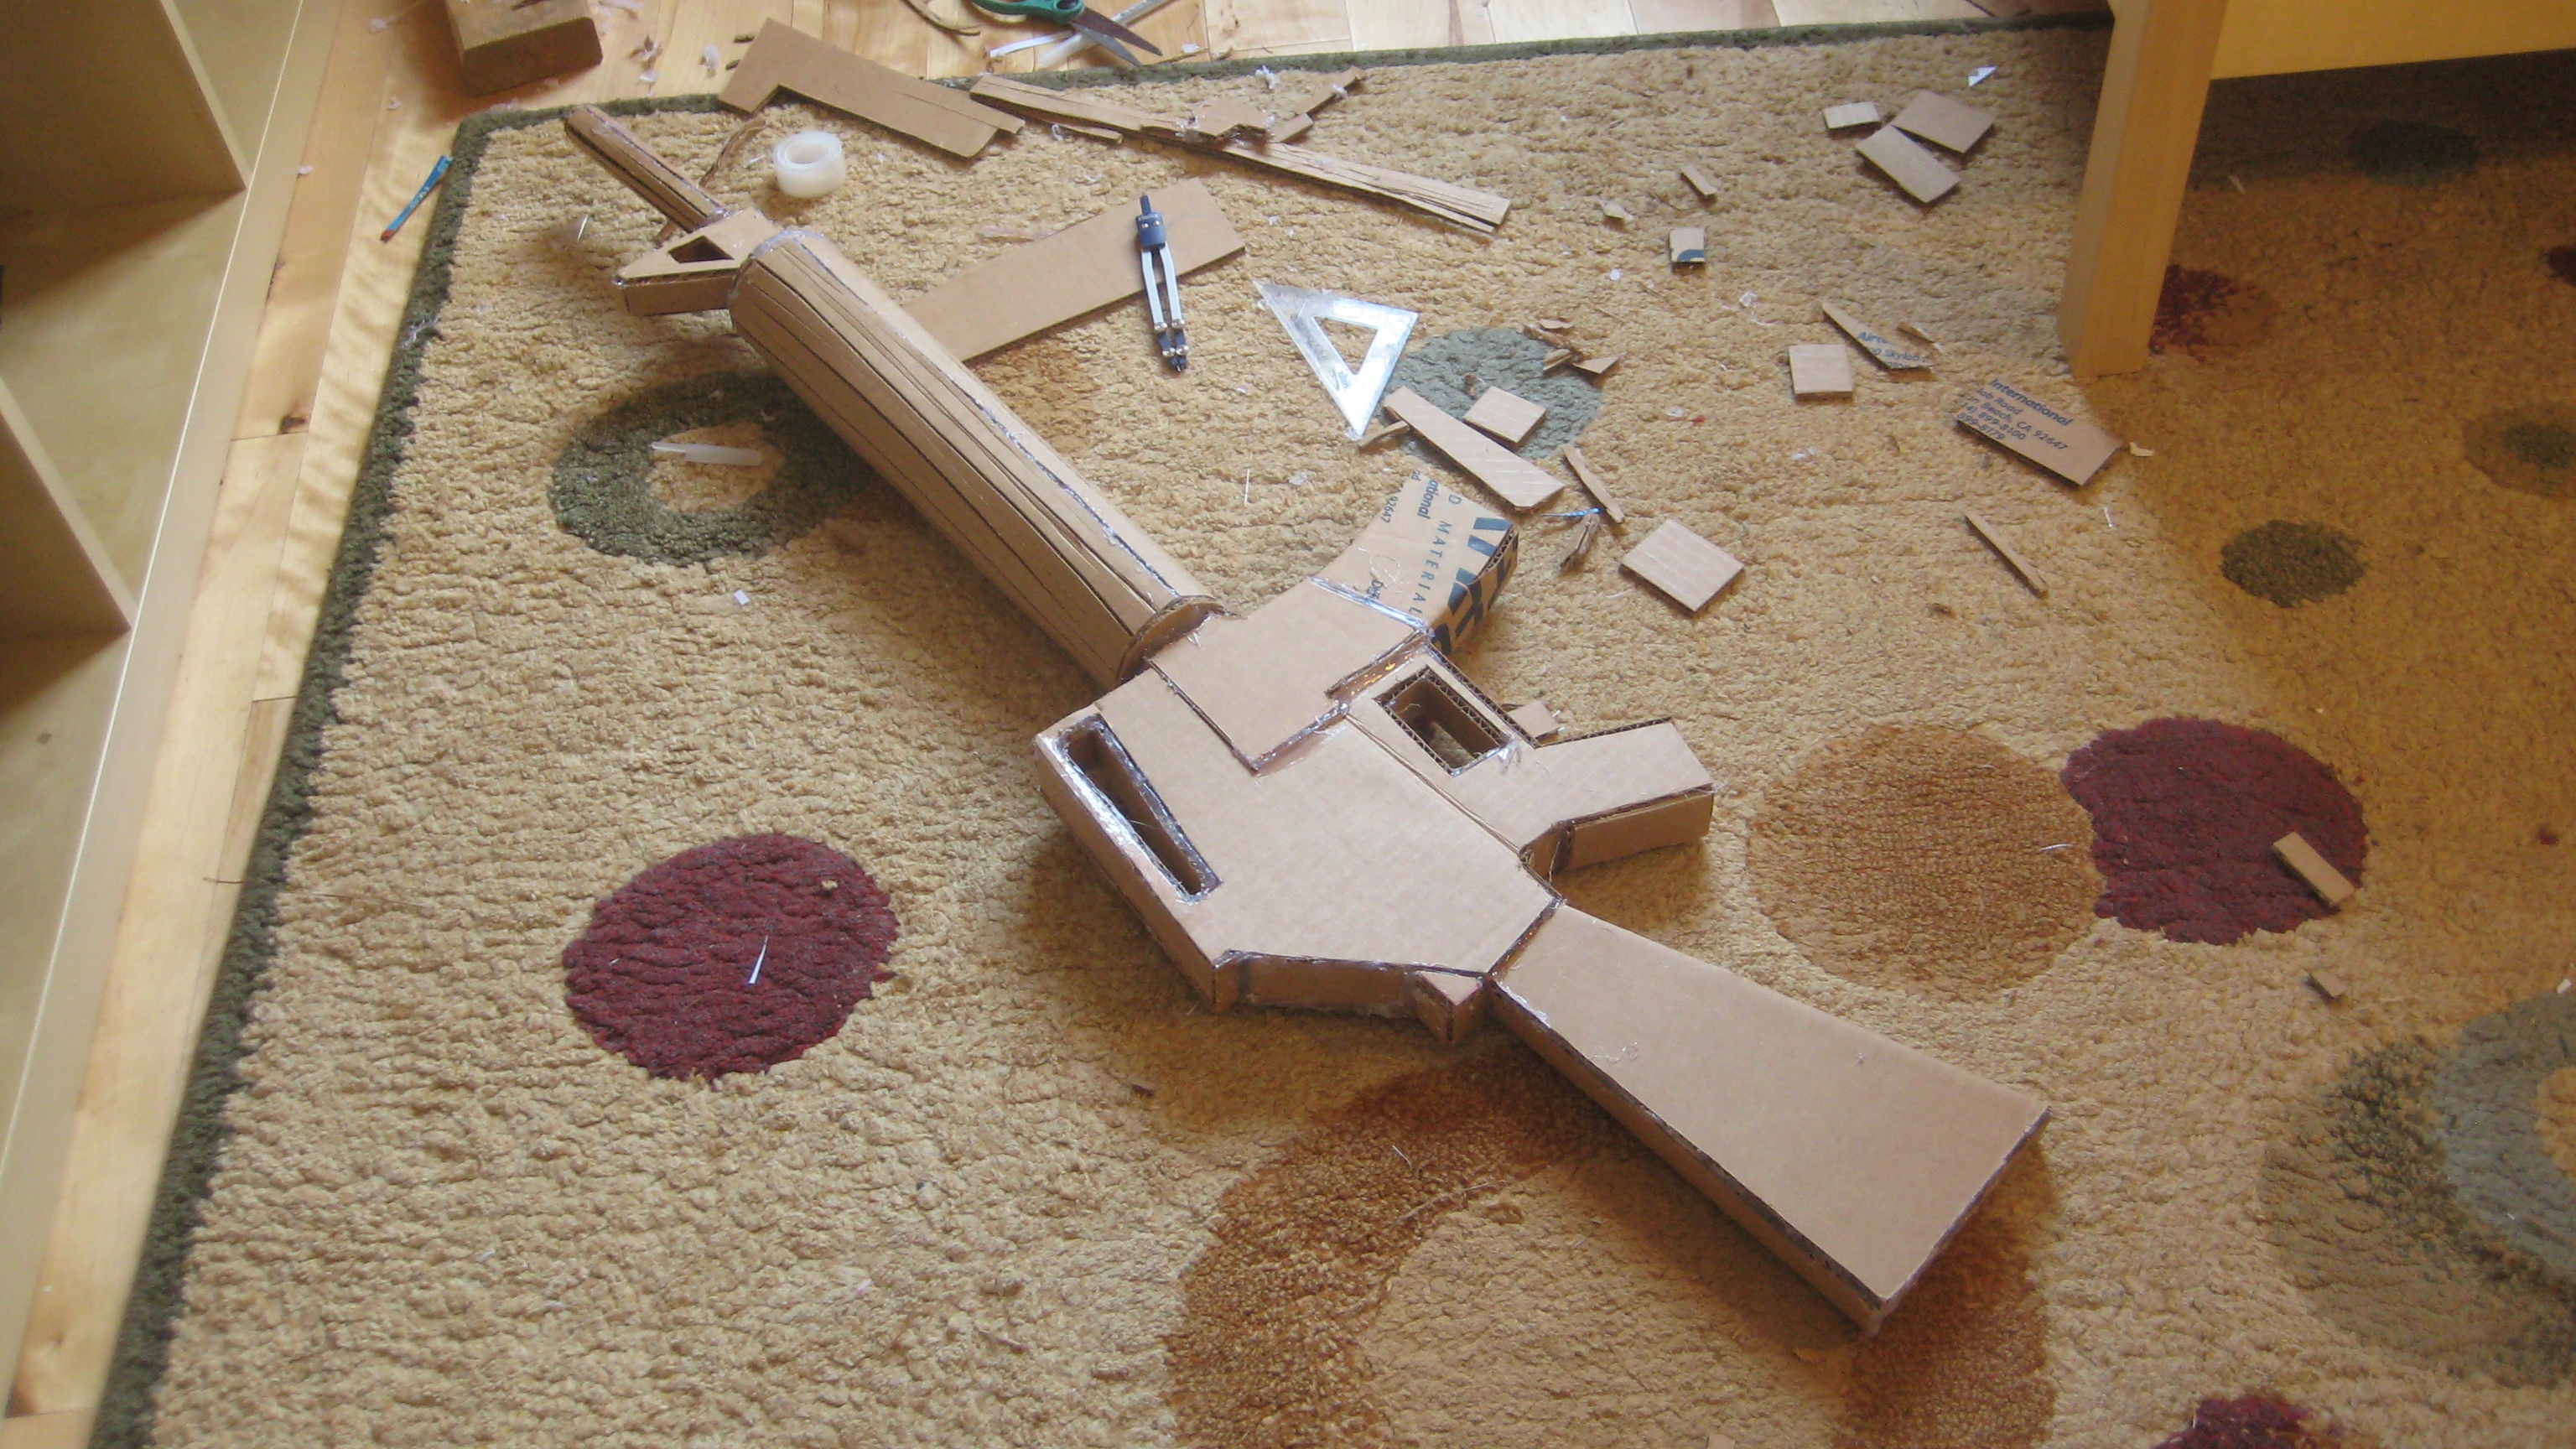 Make your own M16 prop!